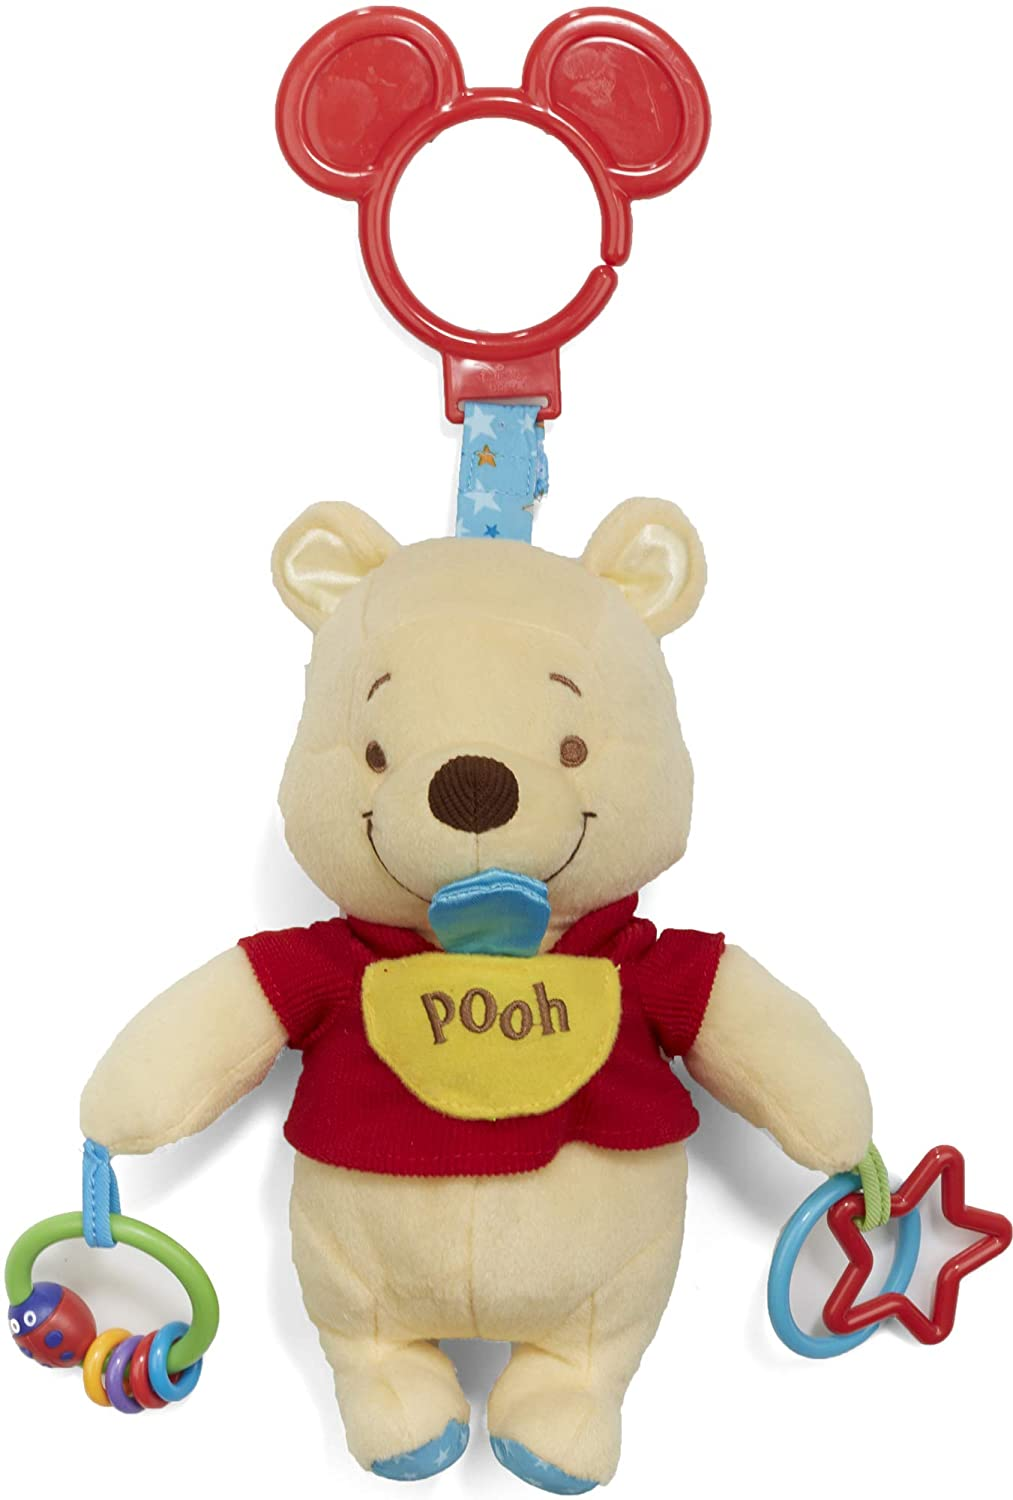 Rainbow Designs dn79704  Winnie Pooh Disney Aktivitä t Spielzeug Rainbow Designs Ltd